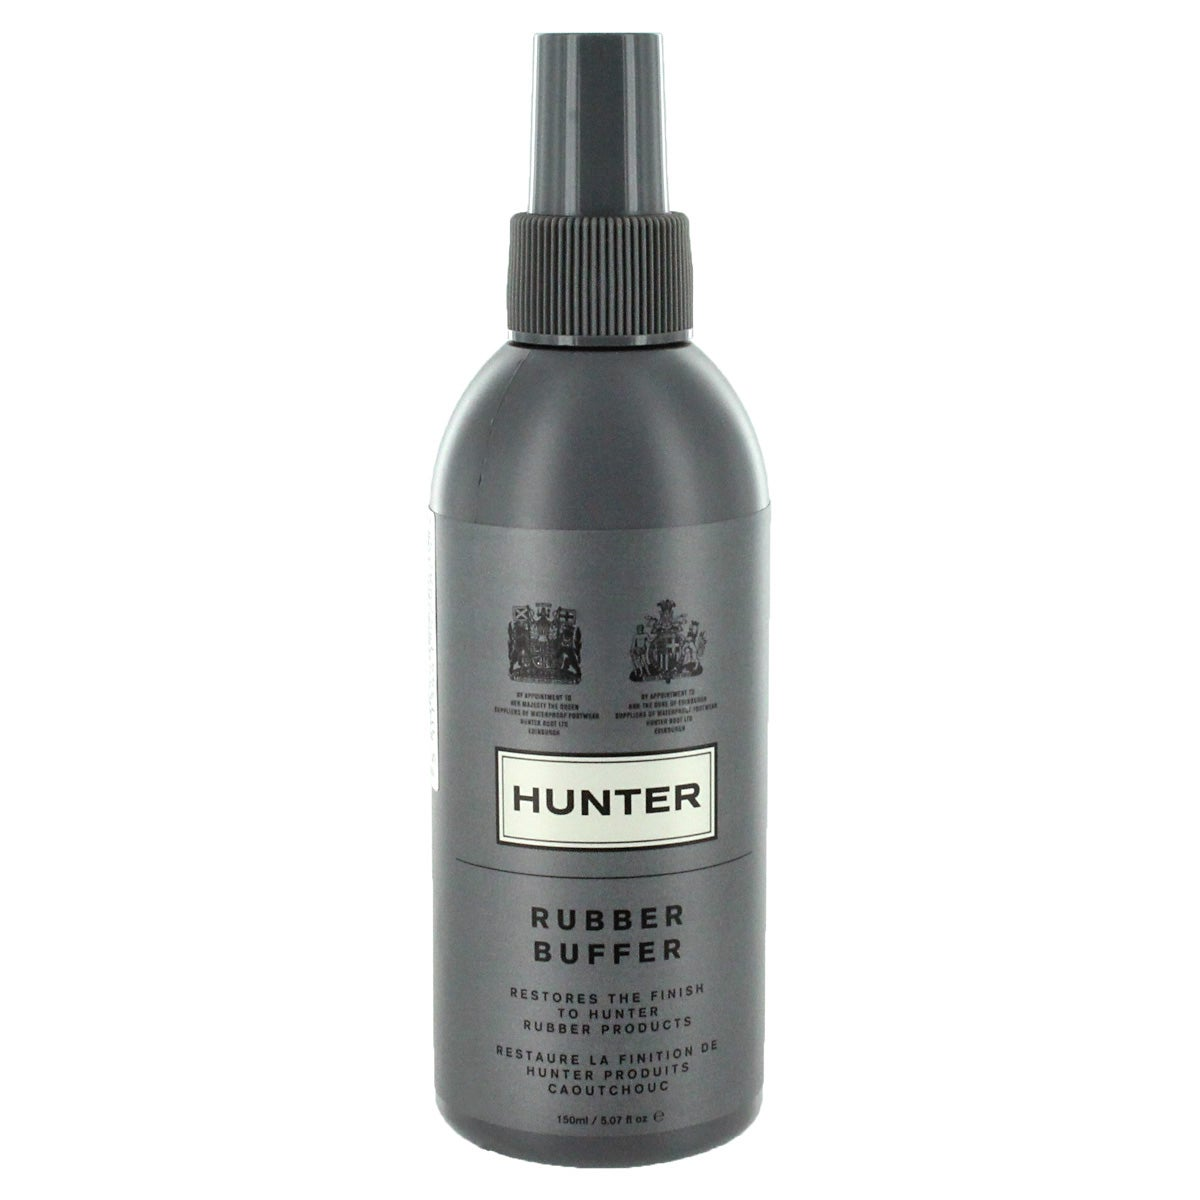 Hunter rubber buffer spray